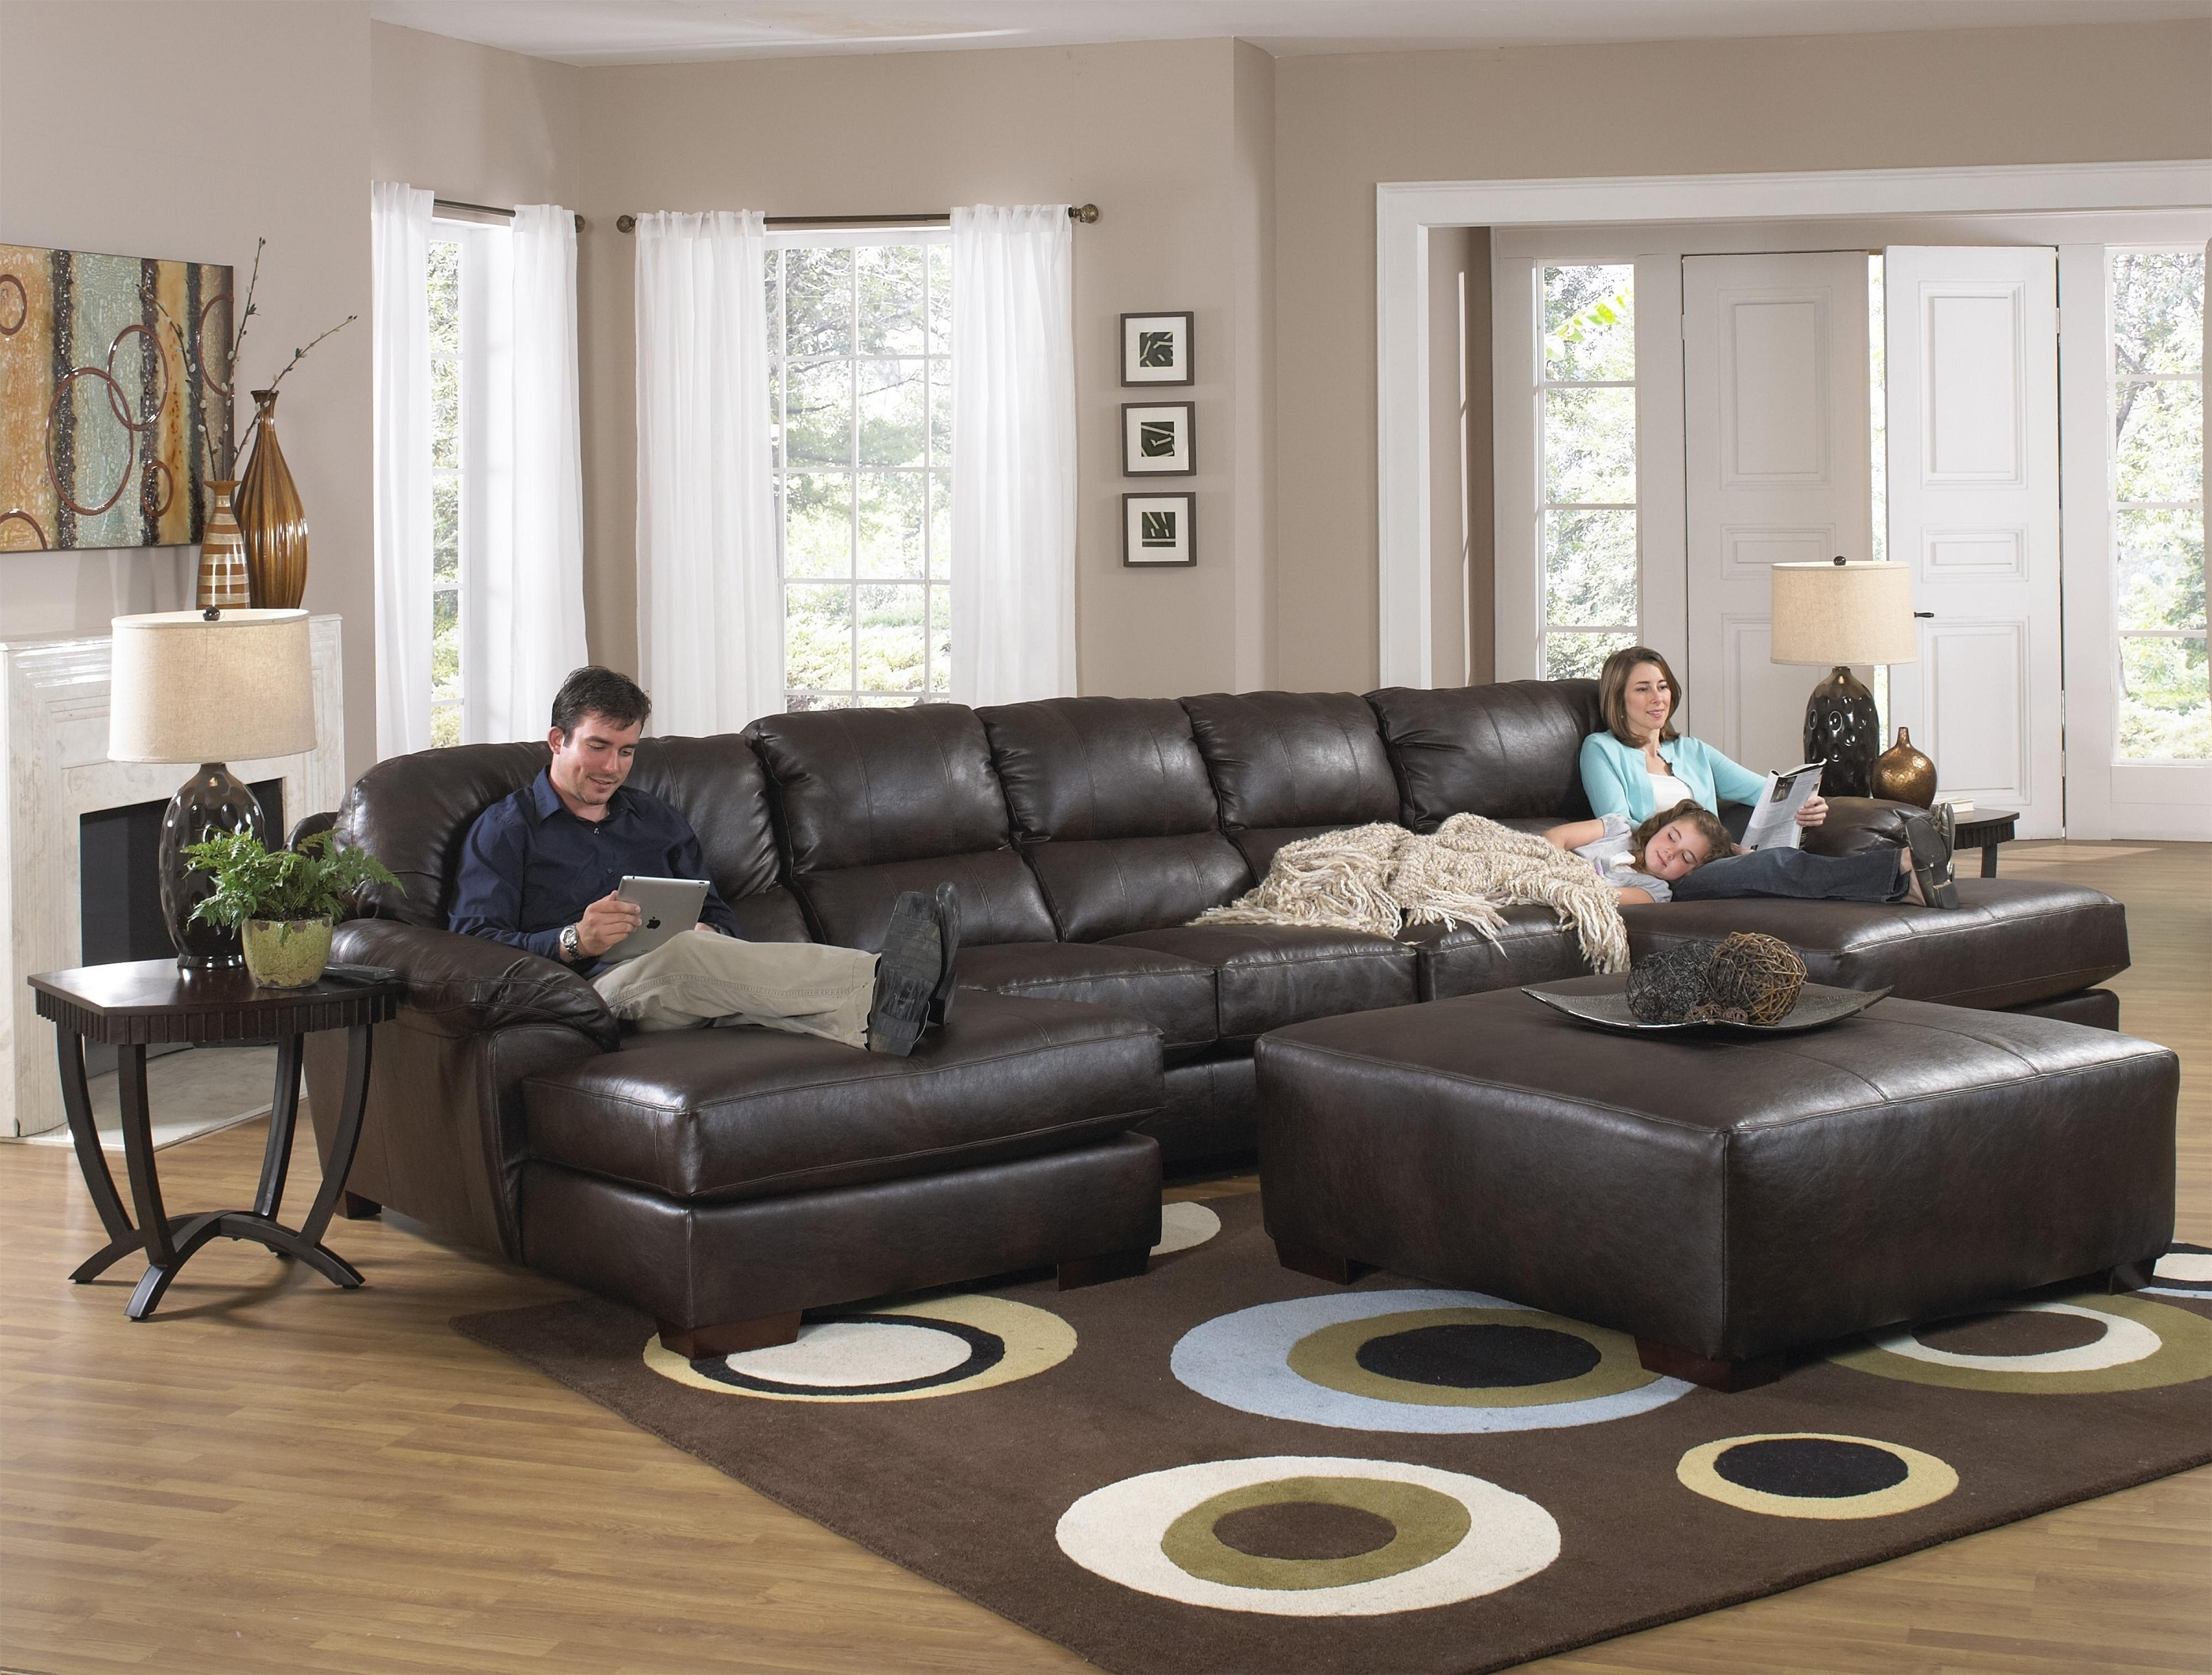 Sofa : Sofa Pit Chair Fabulous Wrought Iron Chaise Lounge Extra With Regard To Most Popular Pittsburgh Sectional Sofas (View 5 of 20)